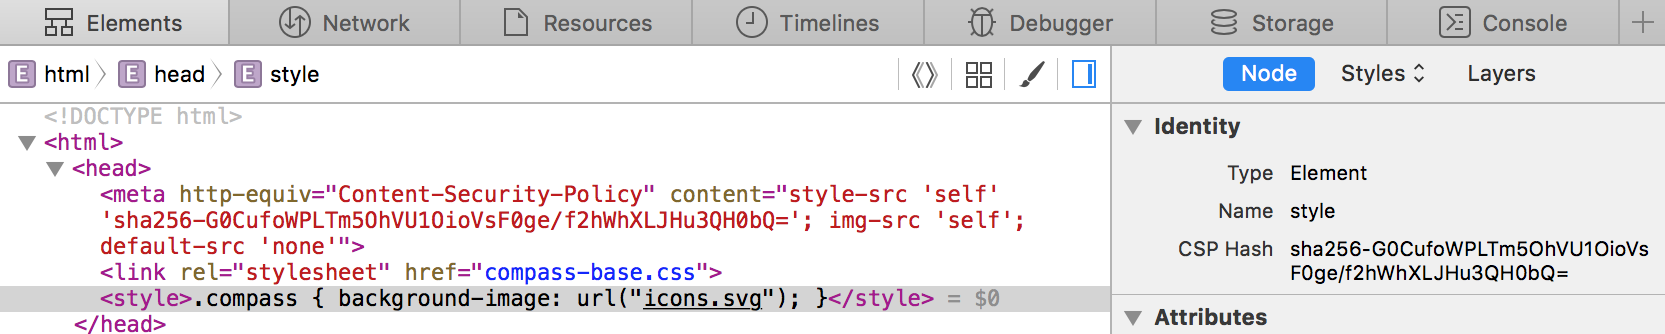 The CSP hash of the inline stylesheet in the example page is sha256-G0CufoWPLTm5OhVU1OioVsF0ge/f2hWhXLJHu3QH0bQ=.